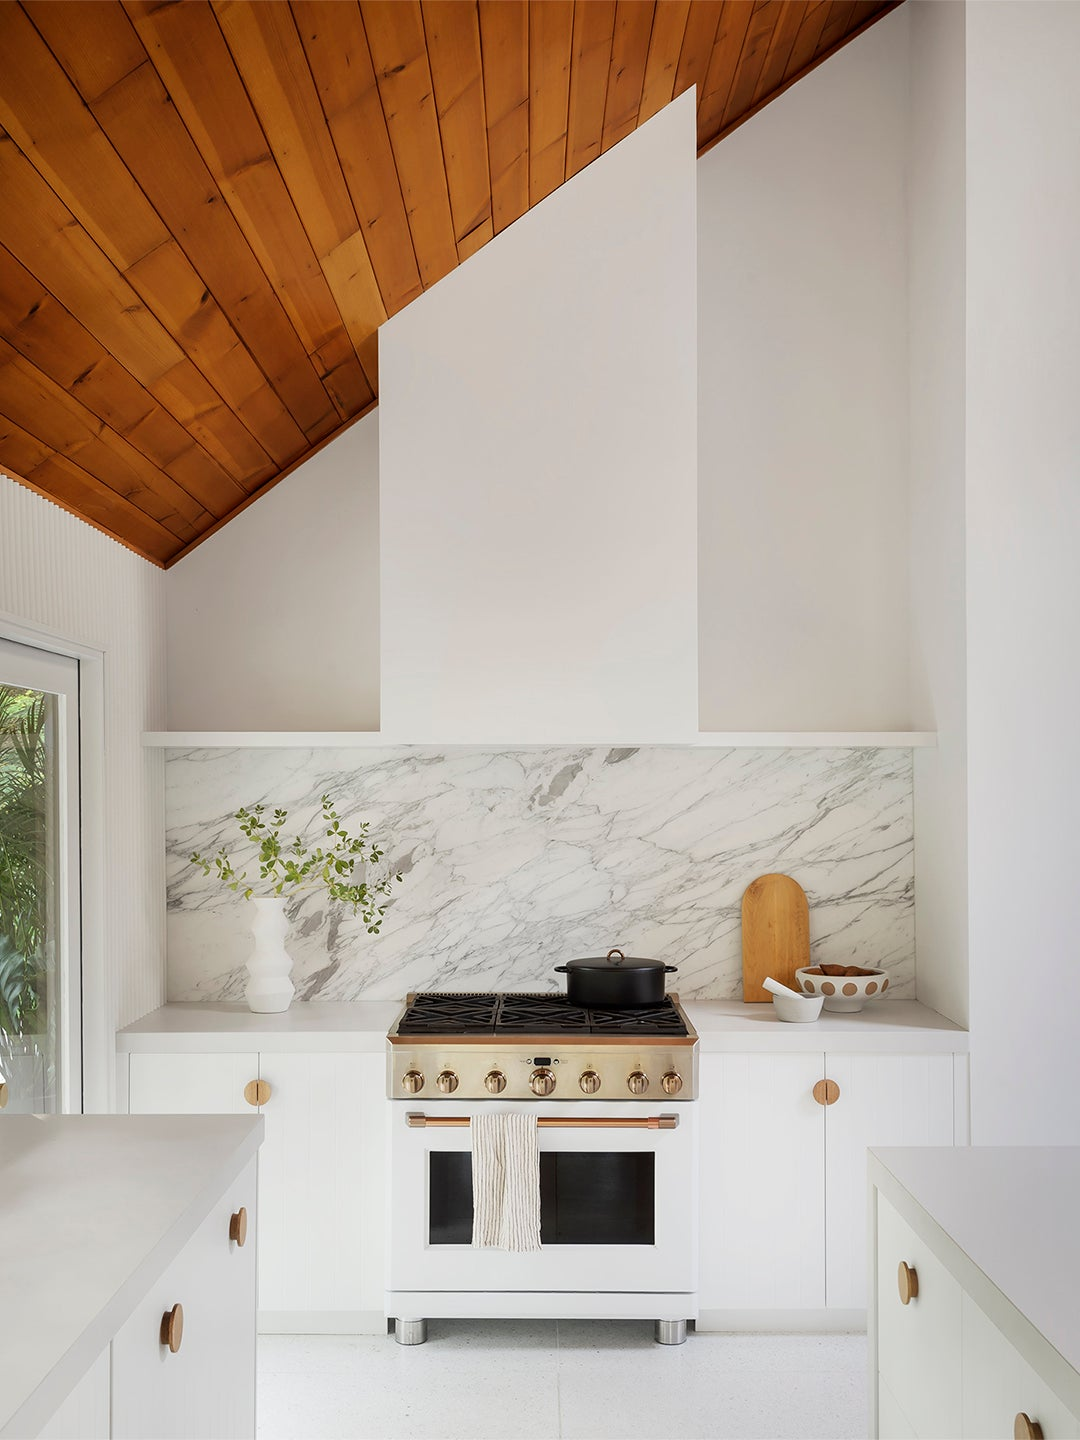 These Backsplash Ideas Bring Out The Best Of White Kitchen Cabinets